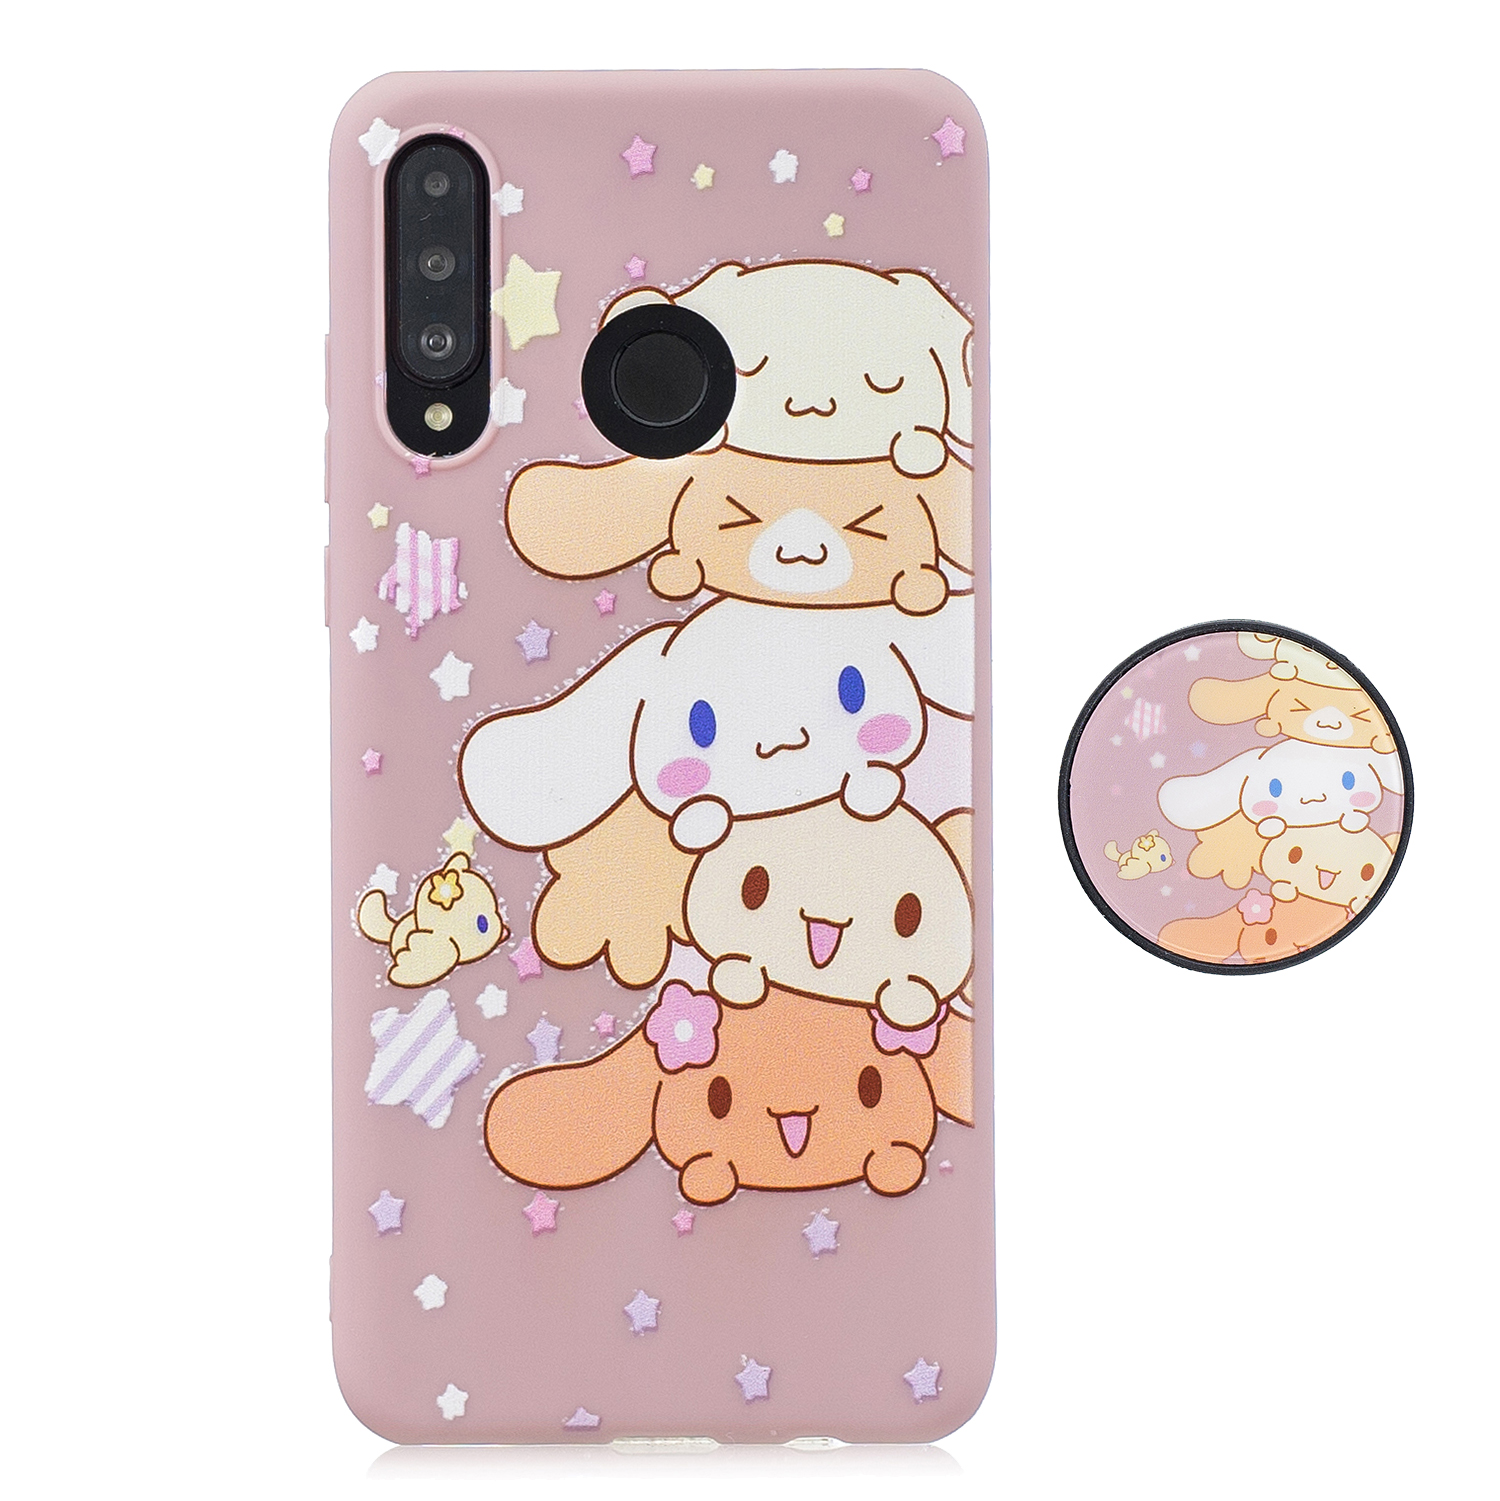 For HUAWEI P30 lite Cute Cartoon Phone Case Ultra Thin Lightweight Soft TPU Phone Case Pure Color Phone Cover with Matching Pattern Adjustable Bracket 1